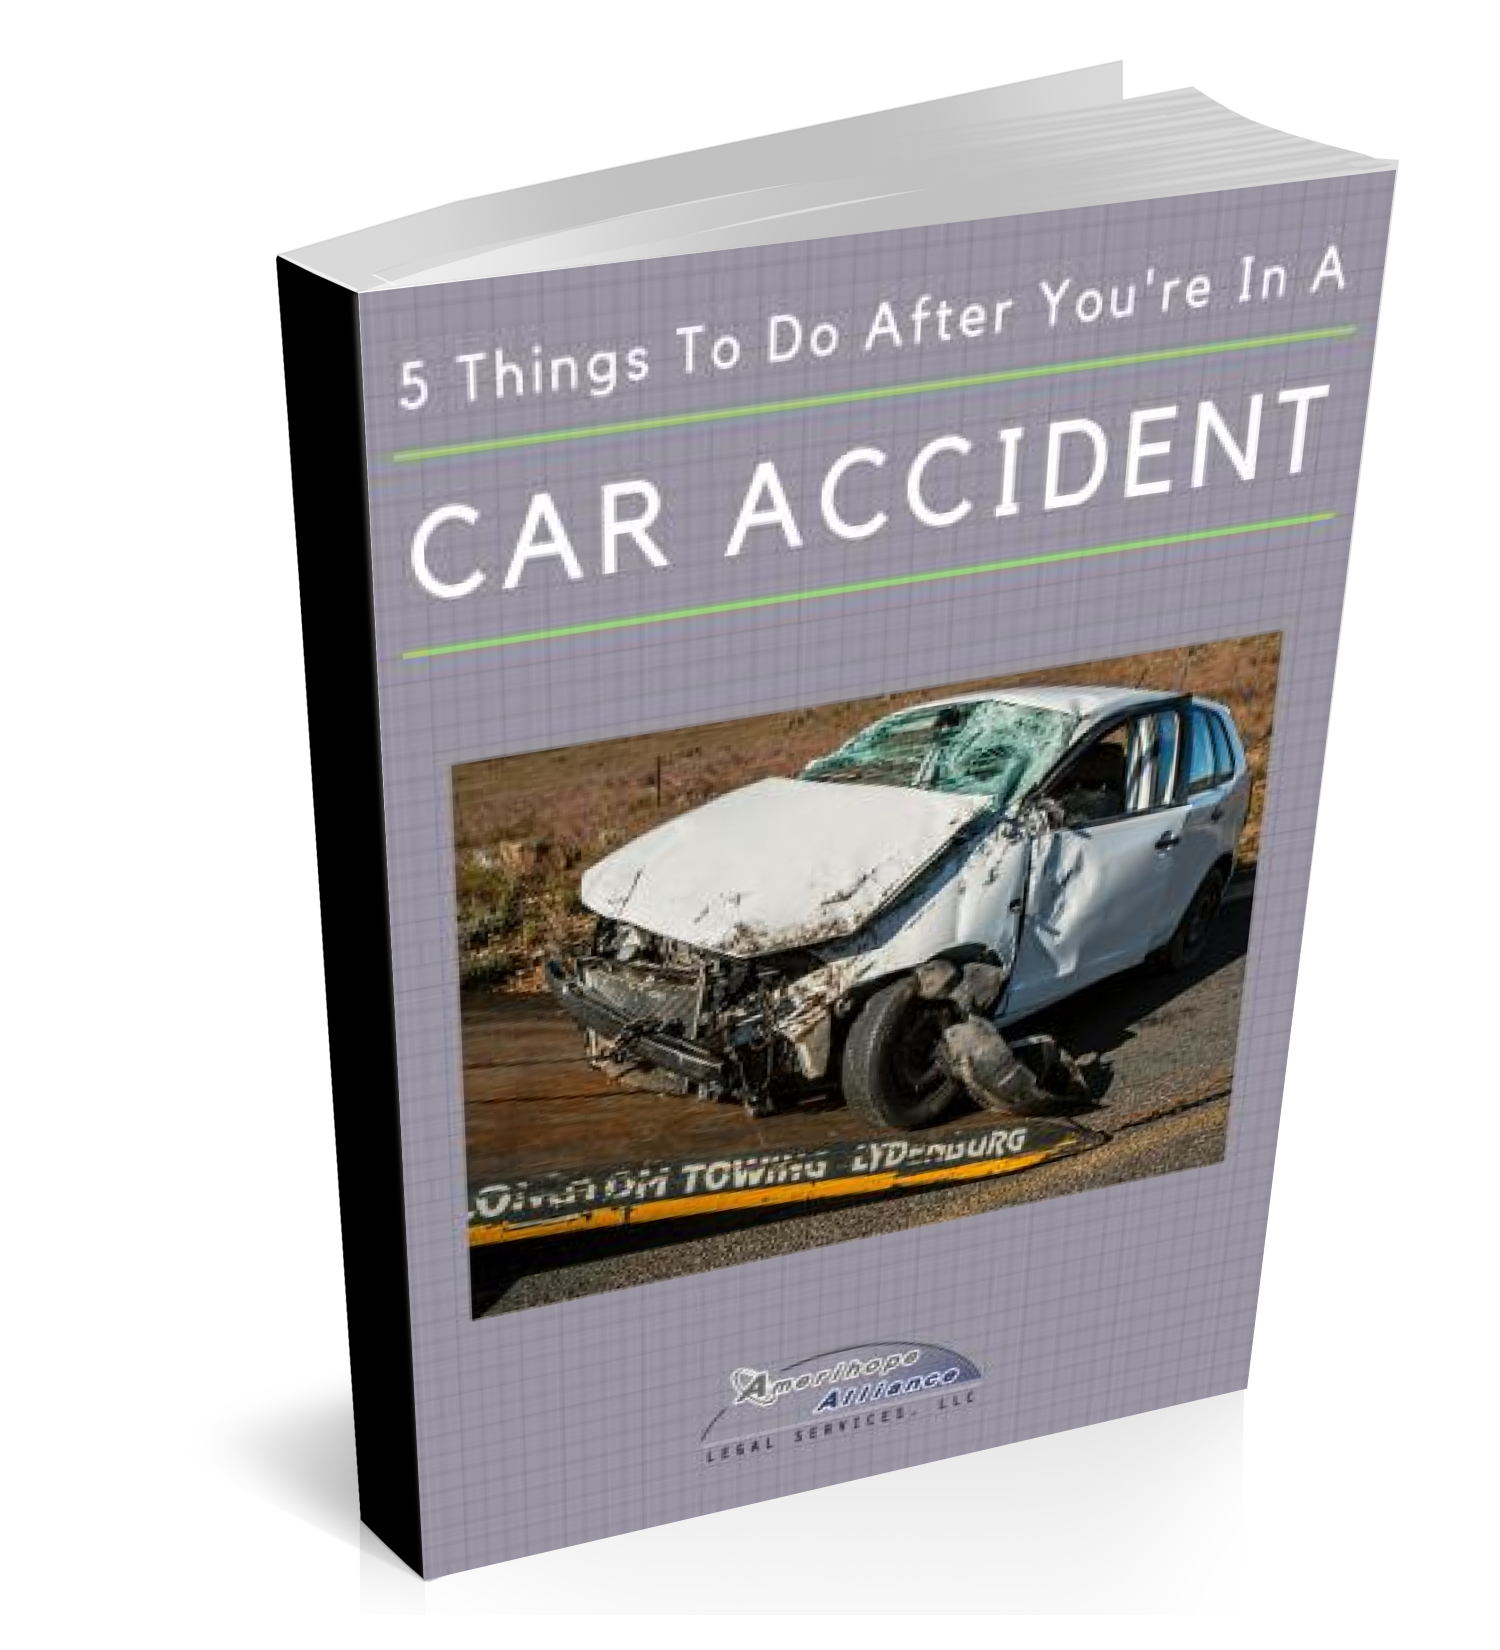 If you've been in a car accident, you need to do the right things to avoid making the situation worse. This free E-Book will tell you what actions to take to protect your physical and financial health following a car accident.